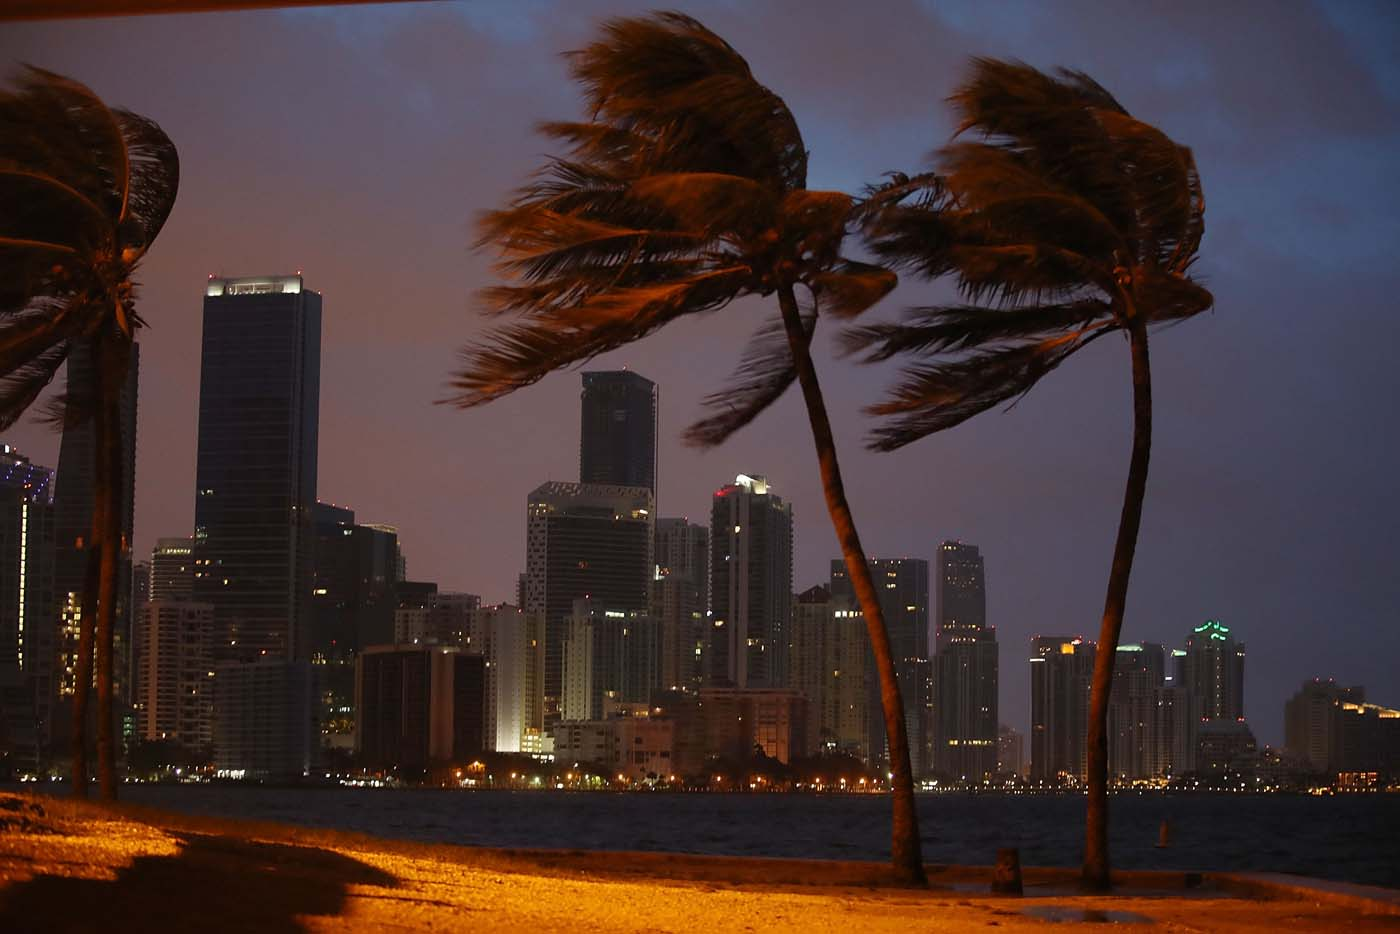 MIAMI, FL - SEPTEMBER 09: The skyline is seen as the outerbands of Hurricane Irma start to reach Florida on September 9, 2017 in Miami, Florida. Florida is in the path of the Hurricane which may come ashore at category 4. Joe Raedle/Getty Images/AFP